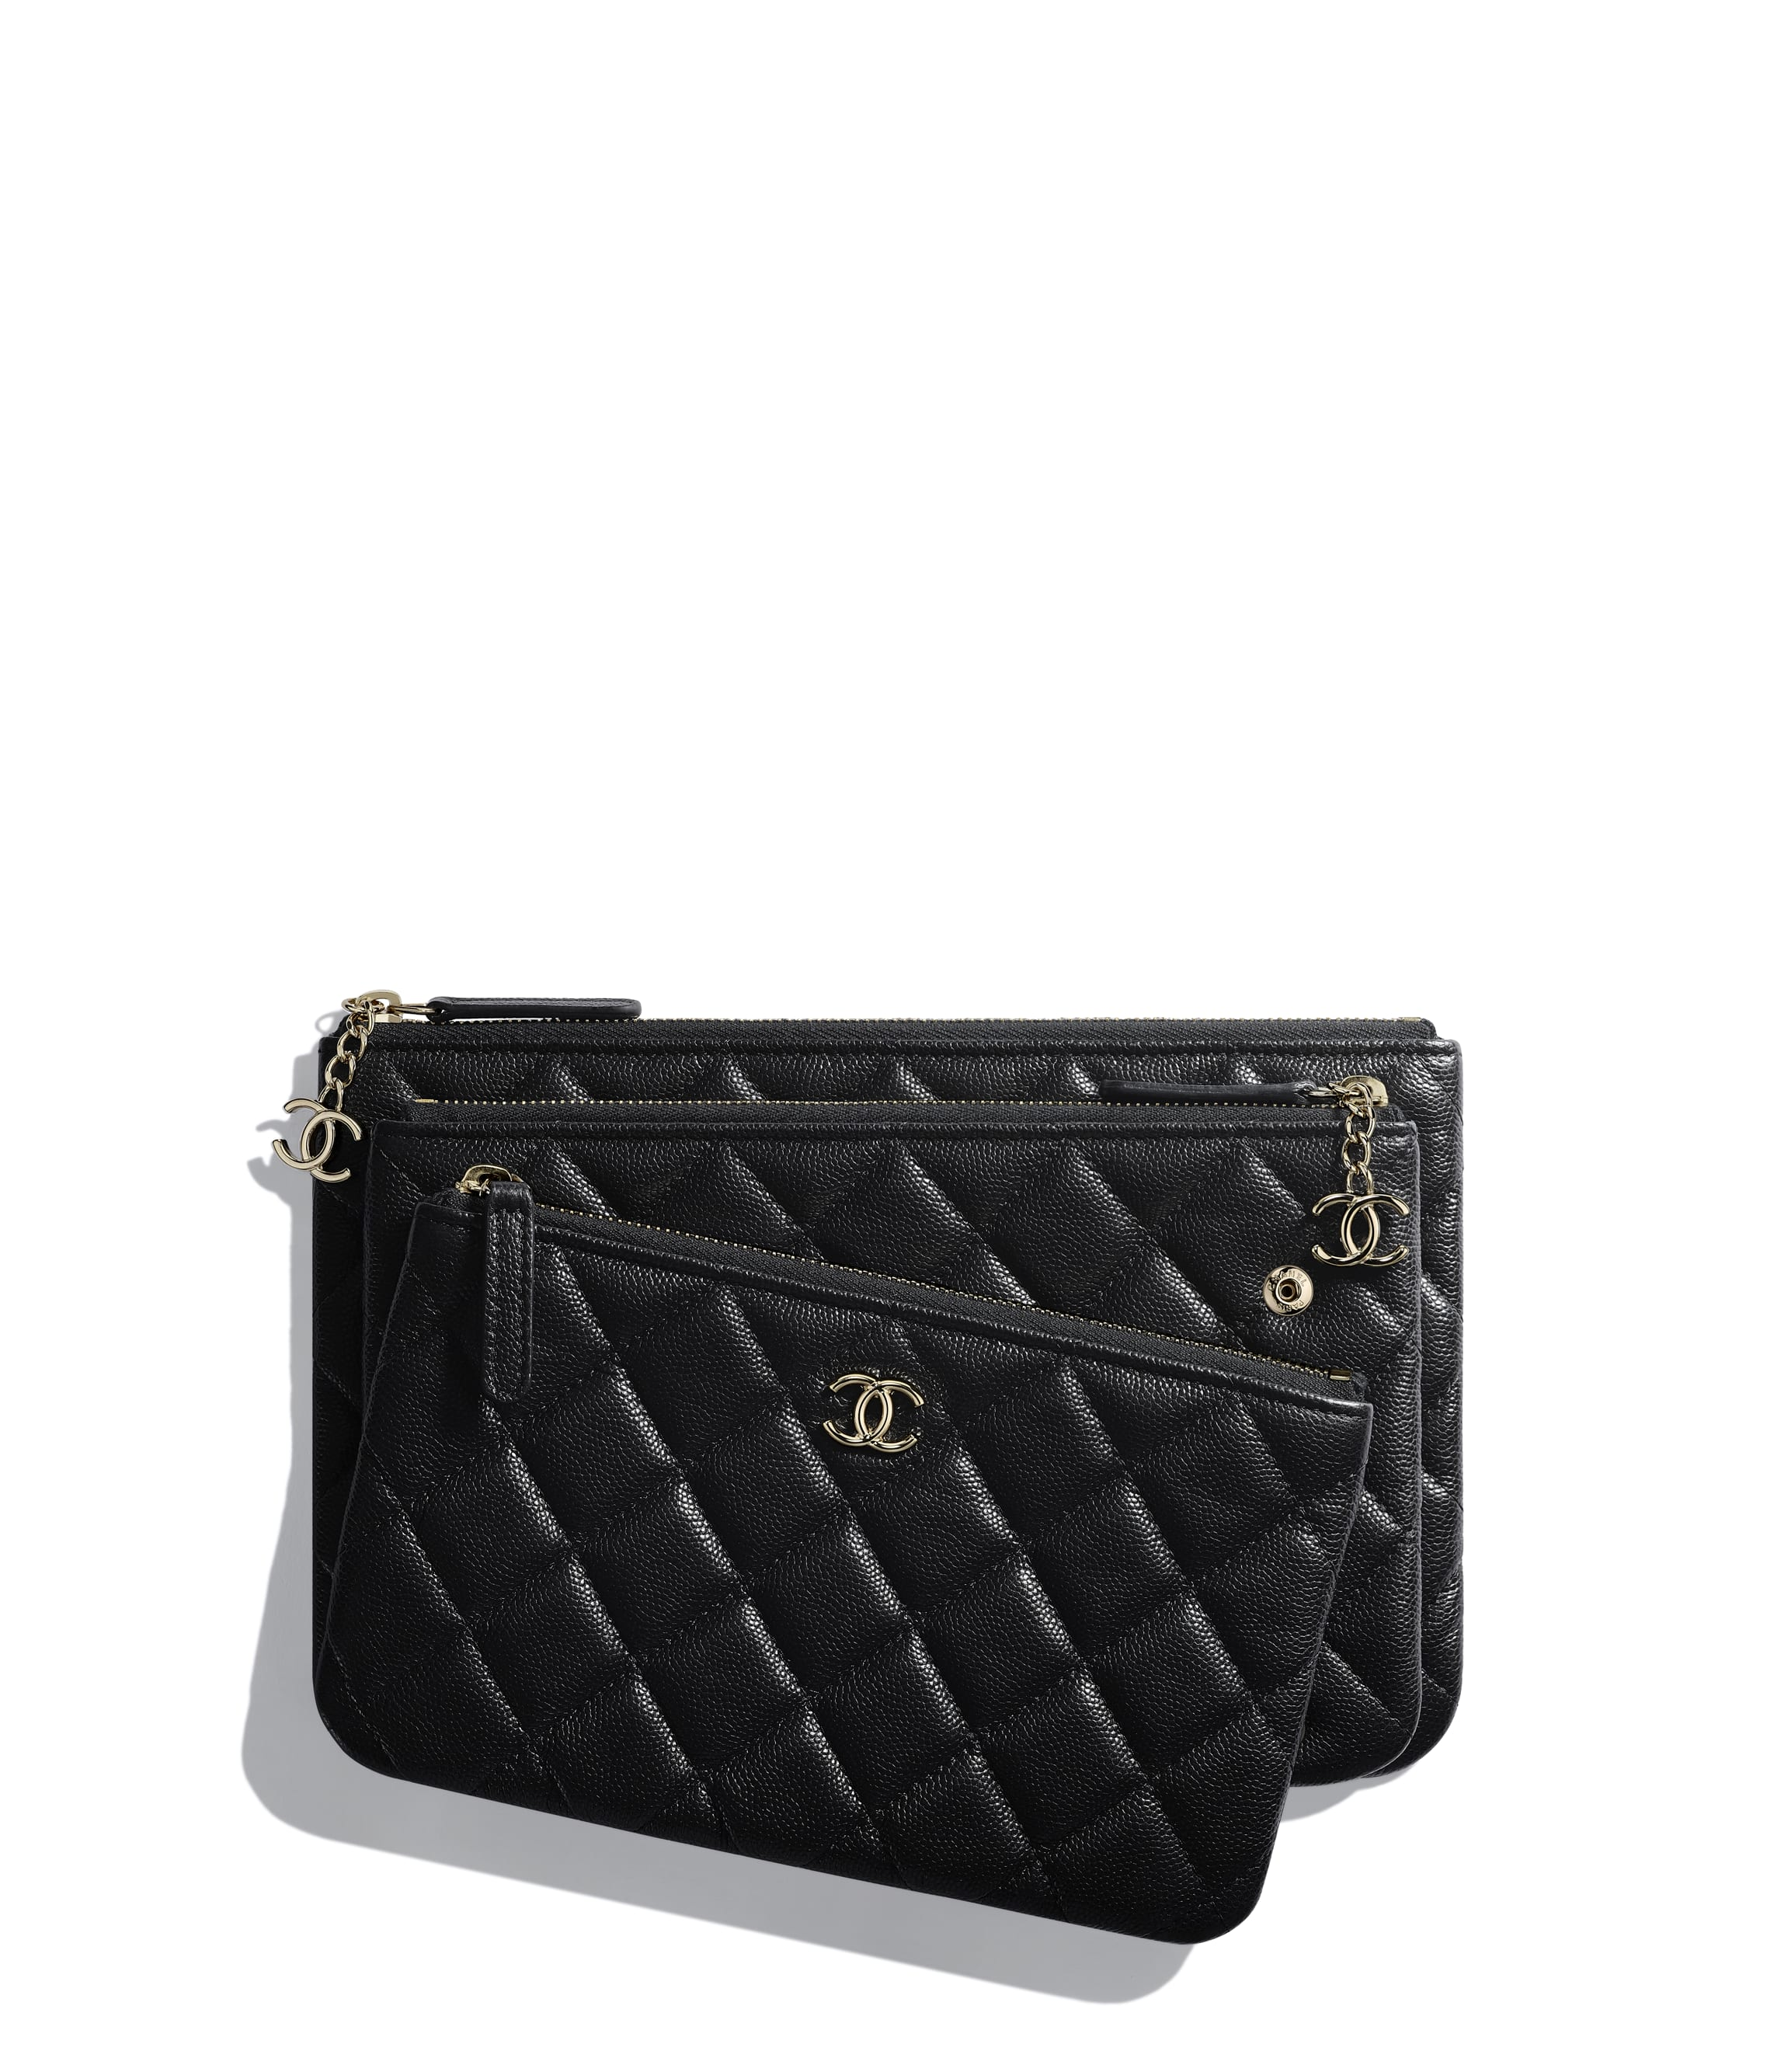 fde4d45c1e05 Pouches & Cases - Small Leather Goods - CHANEL